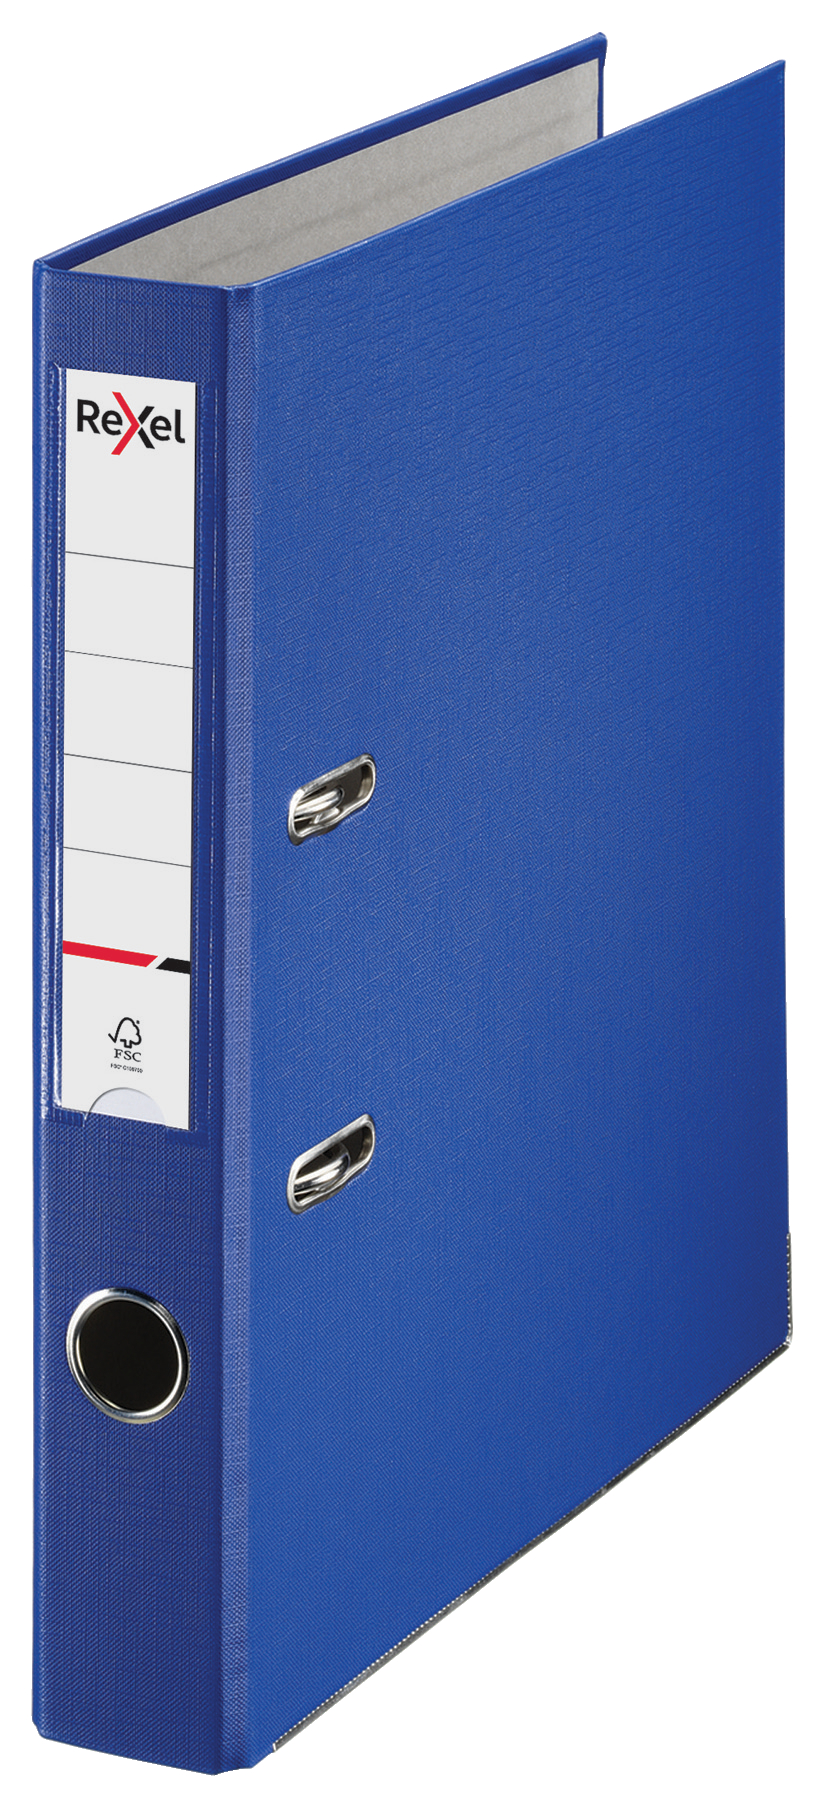 Lever Arch Files Rexel Lever Arch File ECO Polypropylene A4 50mm Spine Width Blue